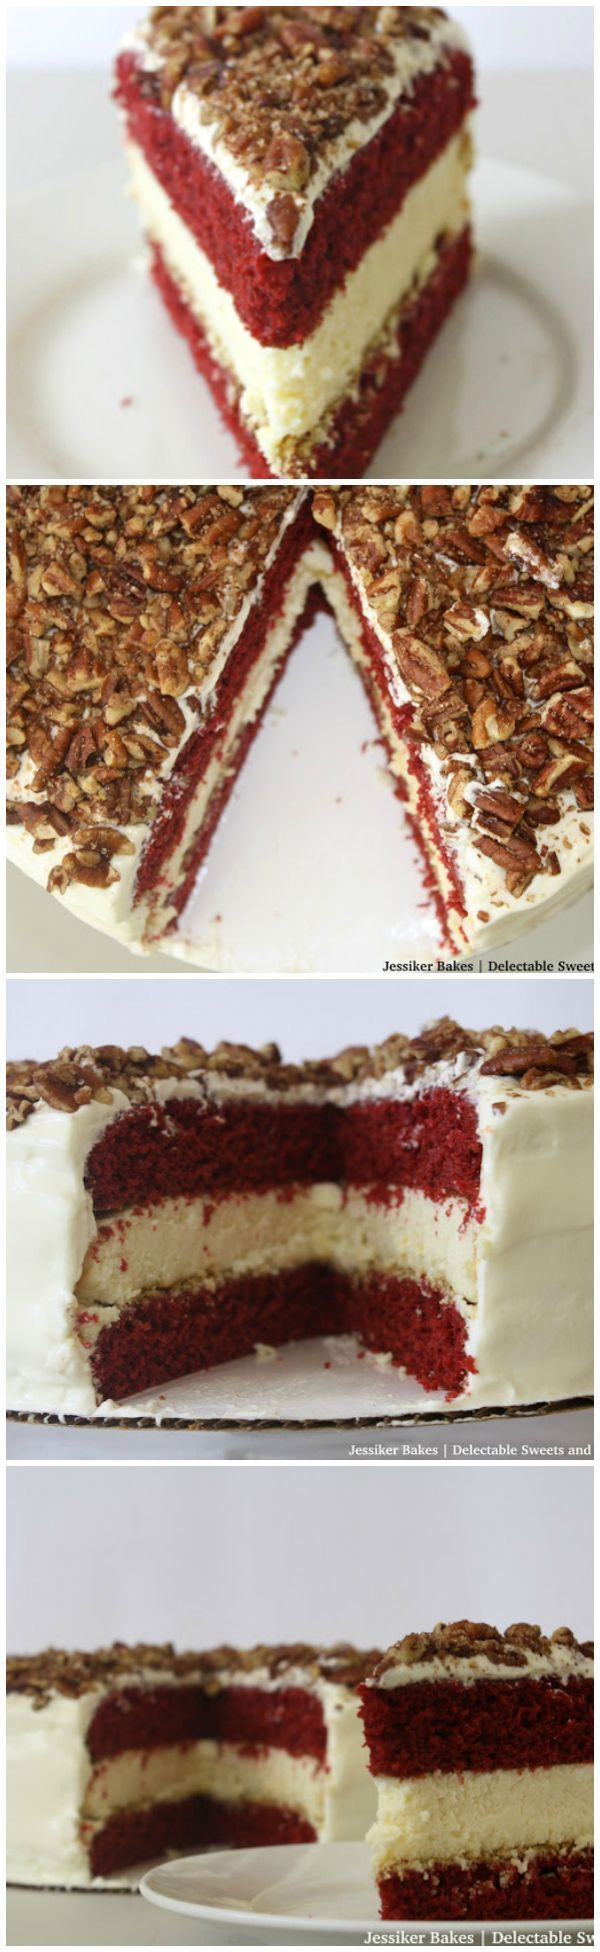 Red Velvet Cake Cheesecake -Fluffy creamy cheesecake in between layers of red velvet cake covered in cream cheese frosting and topped with sugared pecans!